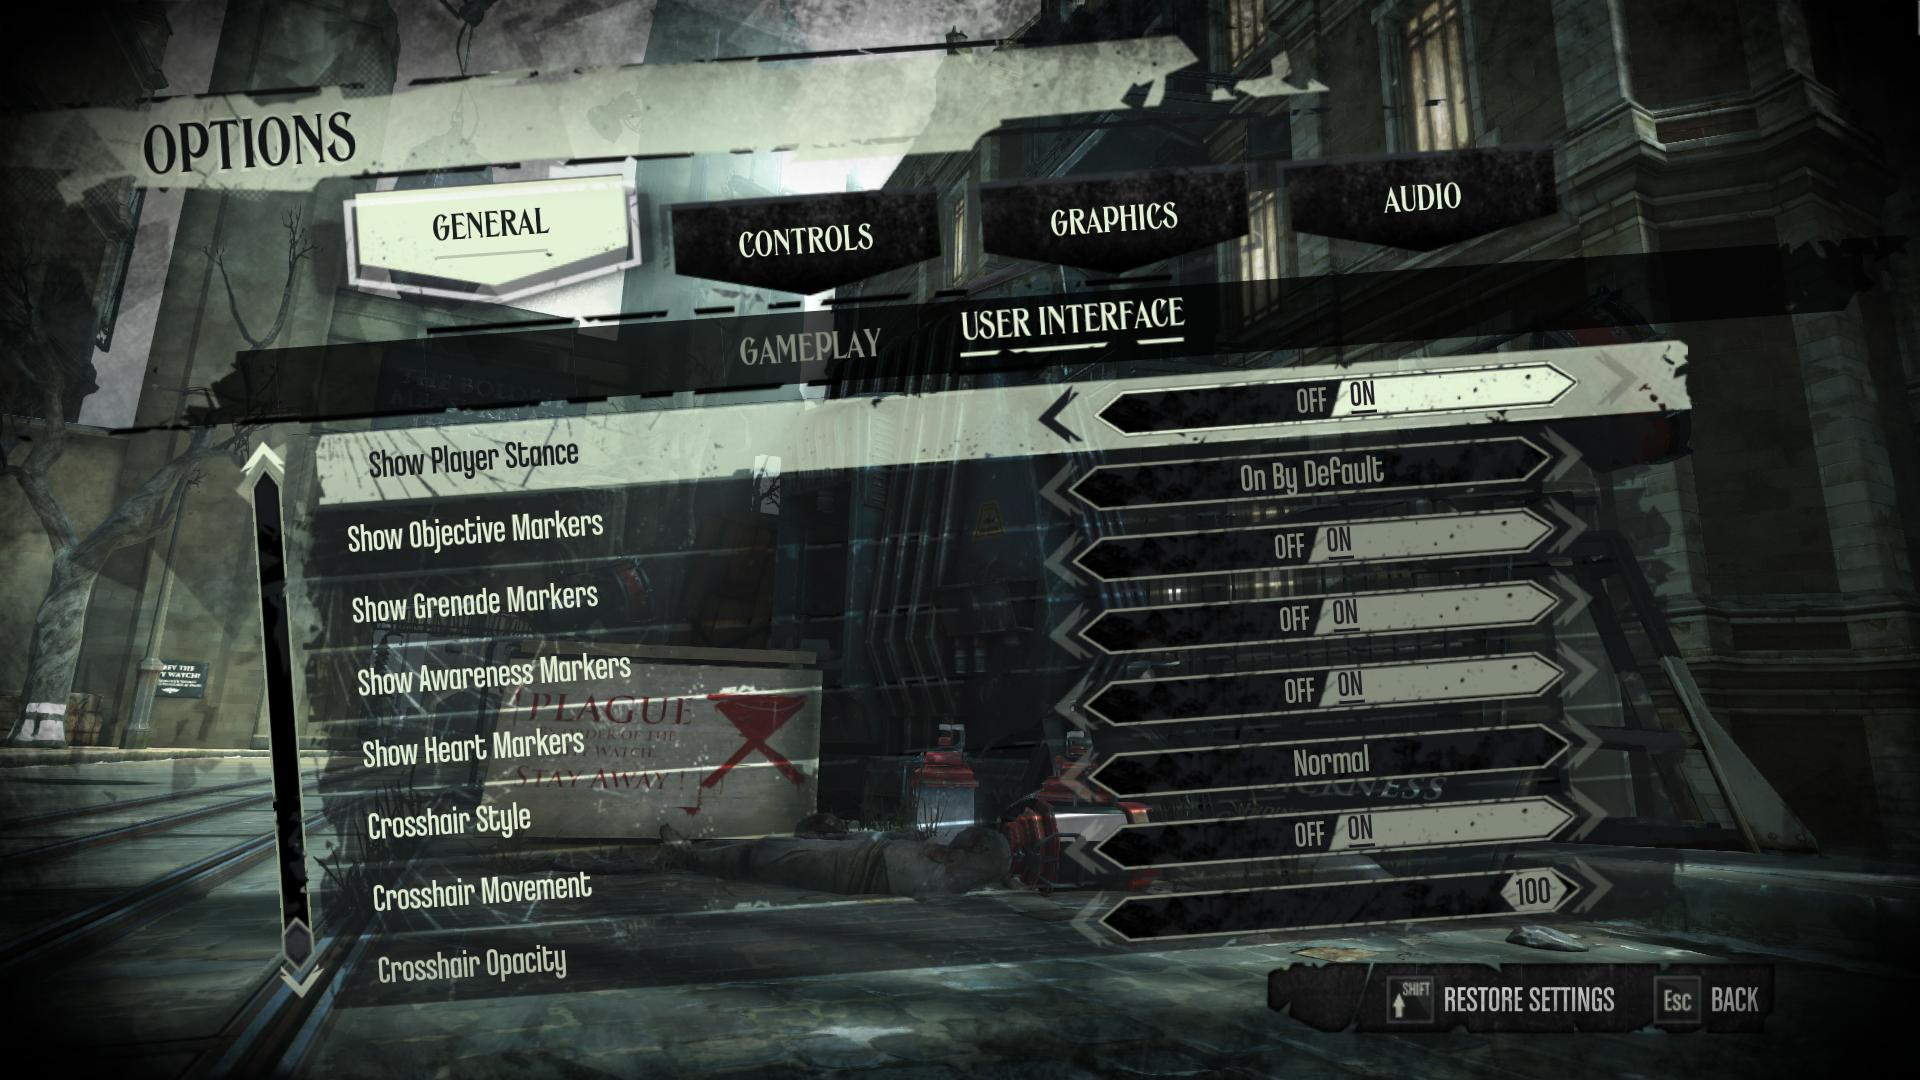 Game News - Dishonored's PC UI Options Revealed   rpg clowndex